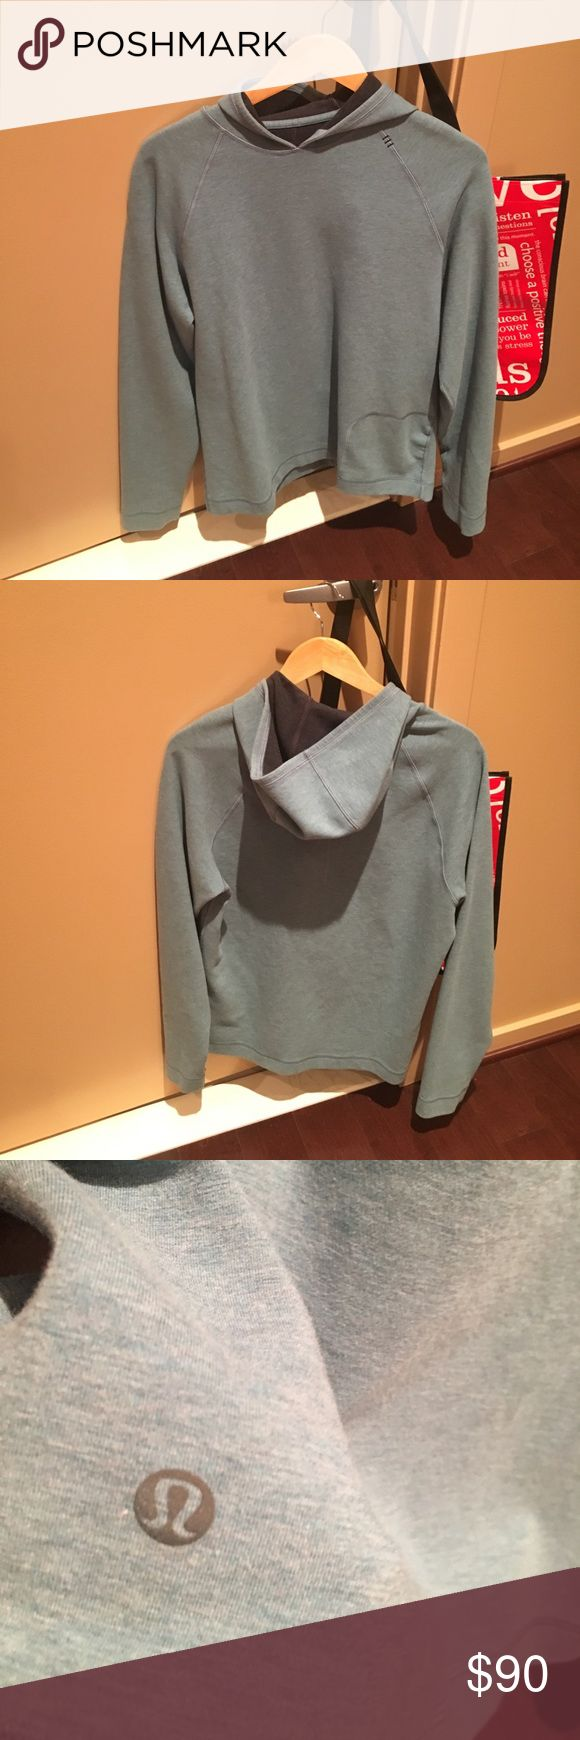 Men's size M blue/gray Lululemon hoodie never worn Cut tags but never worn. Comes with bag. lululemon athletica Shirts Sweatshirts & Hoodies